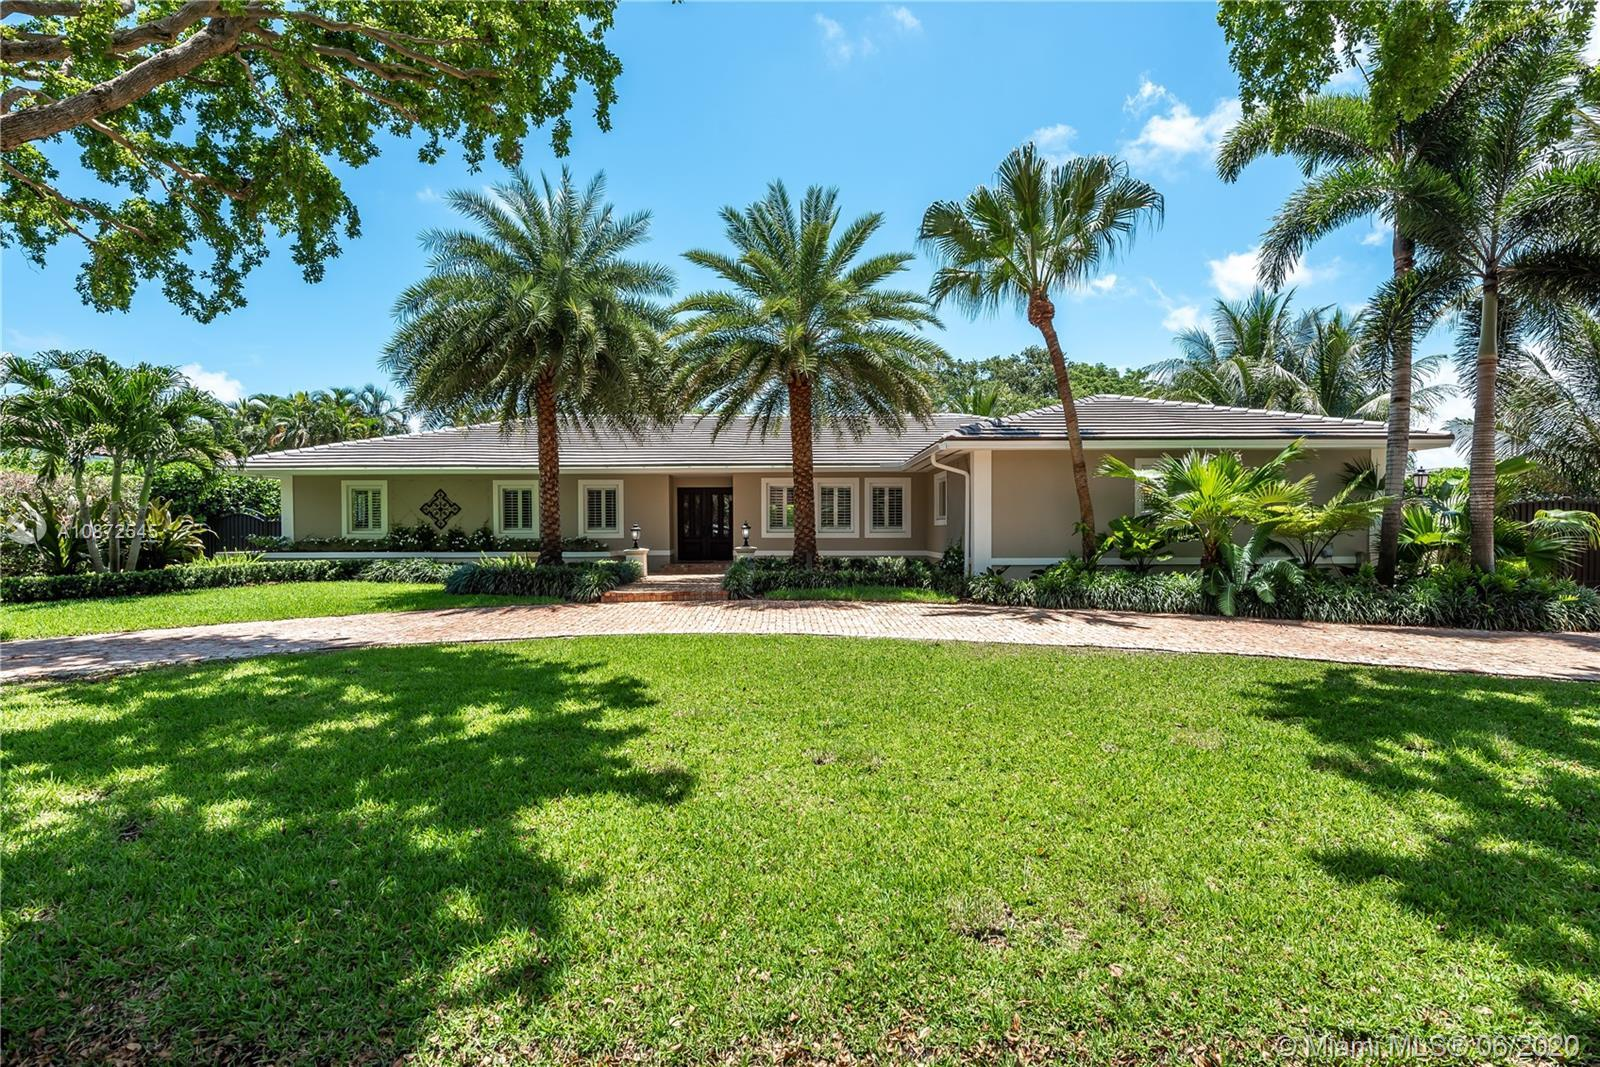 This charming & updated home is located in the guard gated community of Pinecrest By the Sea. Close